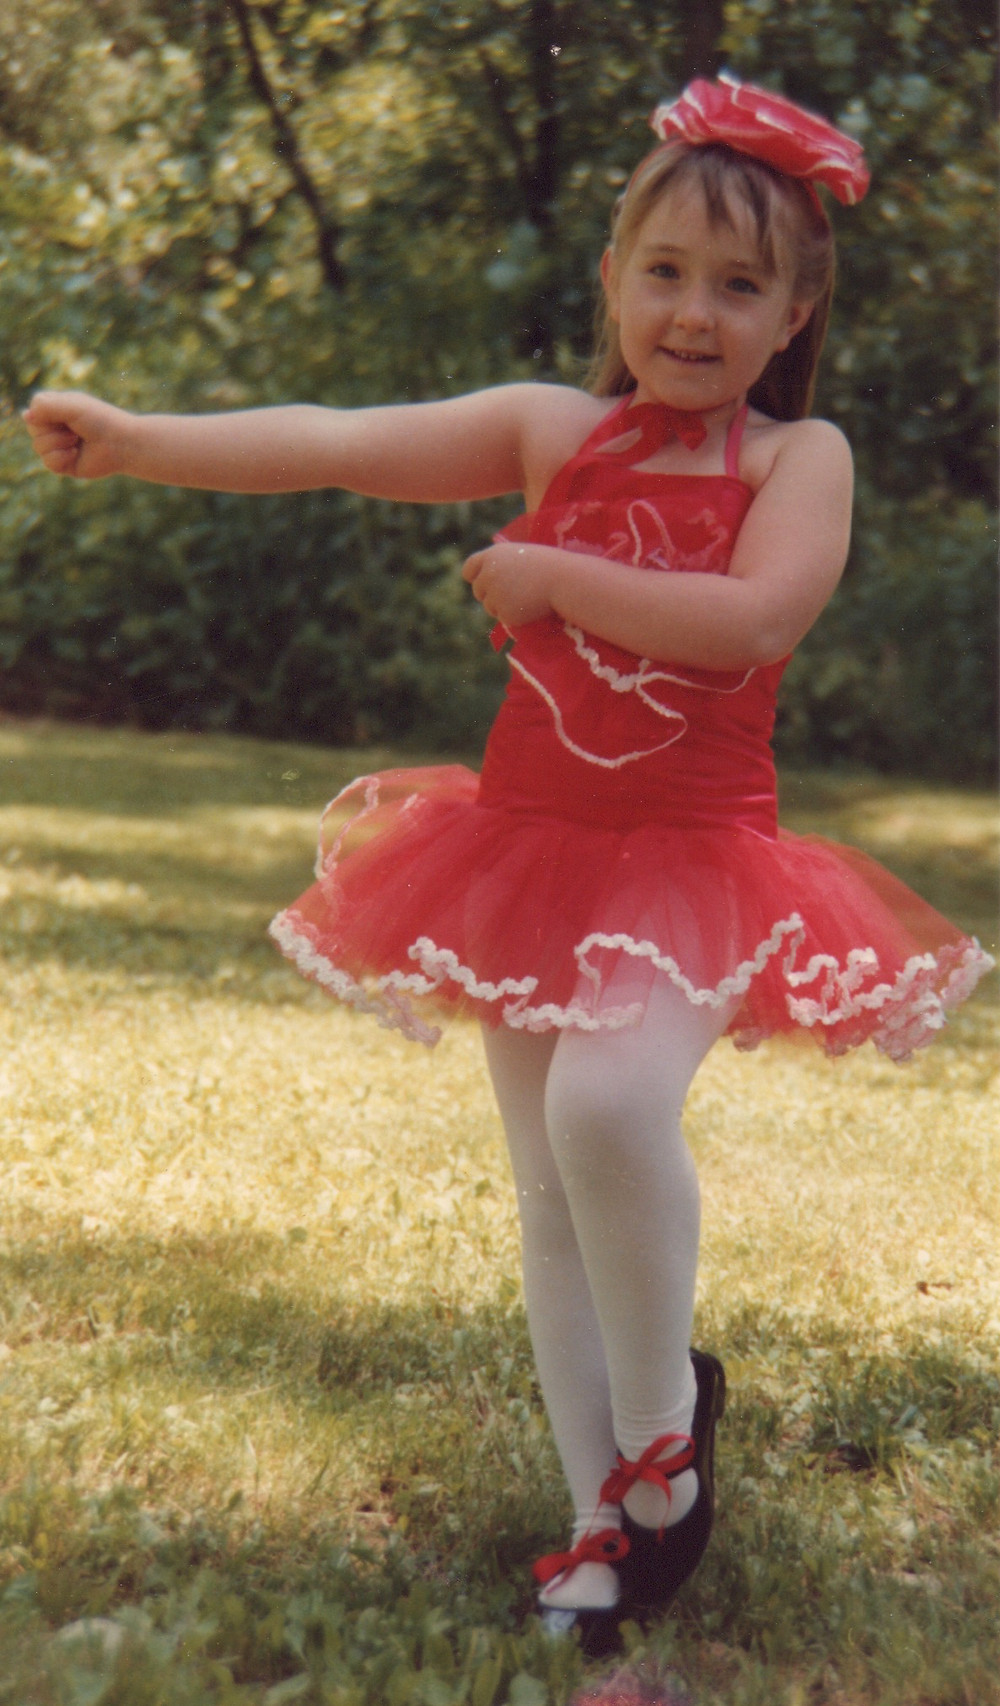 Me in red dance outfit.jpeg